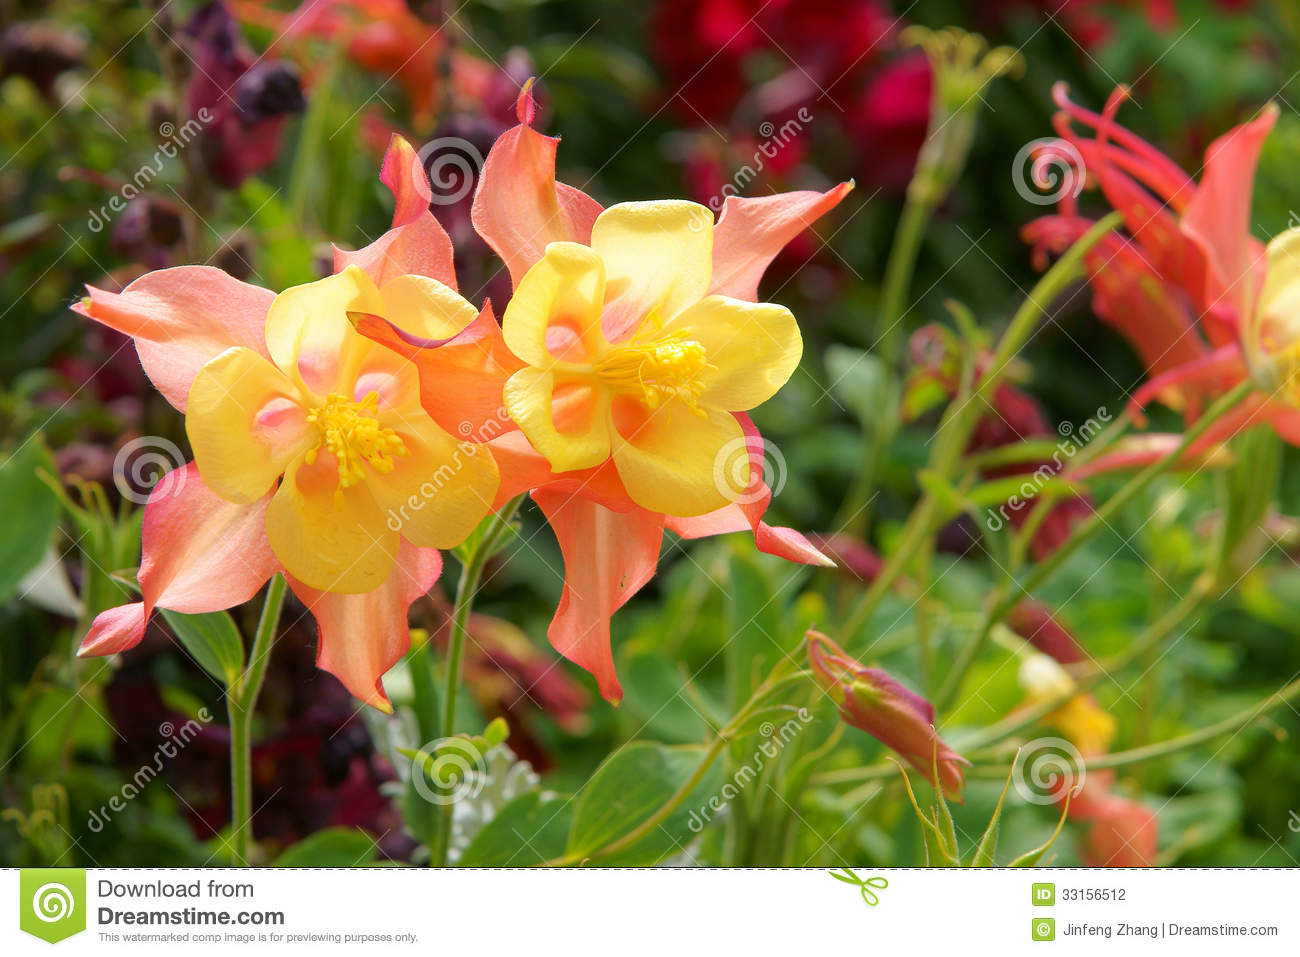 Columbine flowers stock photo image of delicate petals 33156512 royalty free stock photo izmirmasajfo